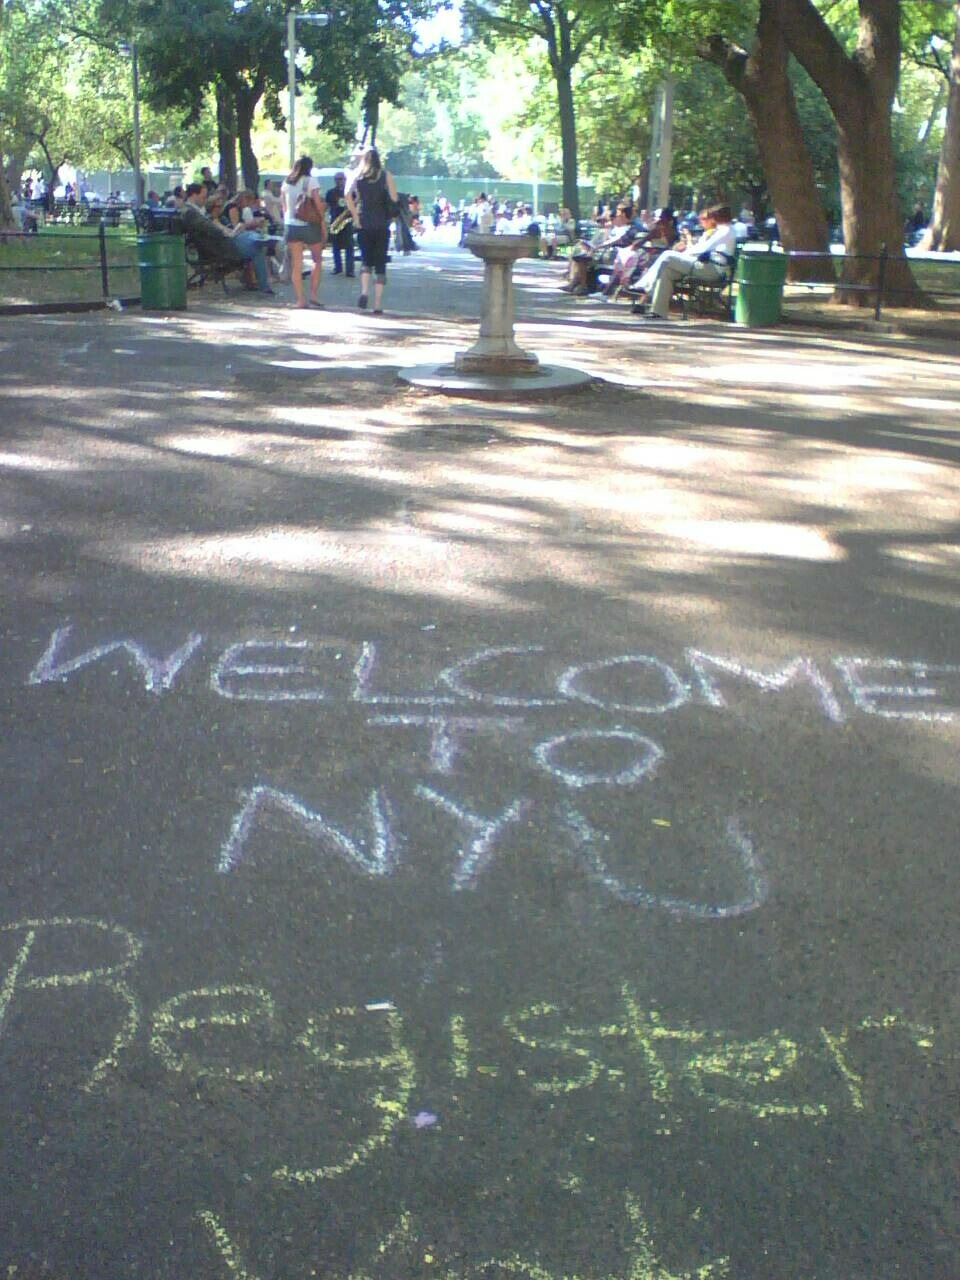 NYU Welcomes You to Their Park